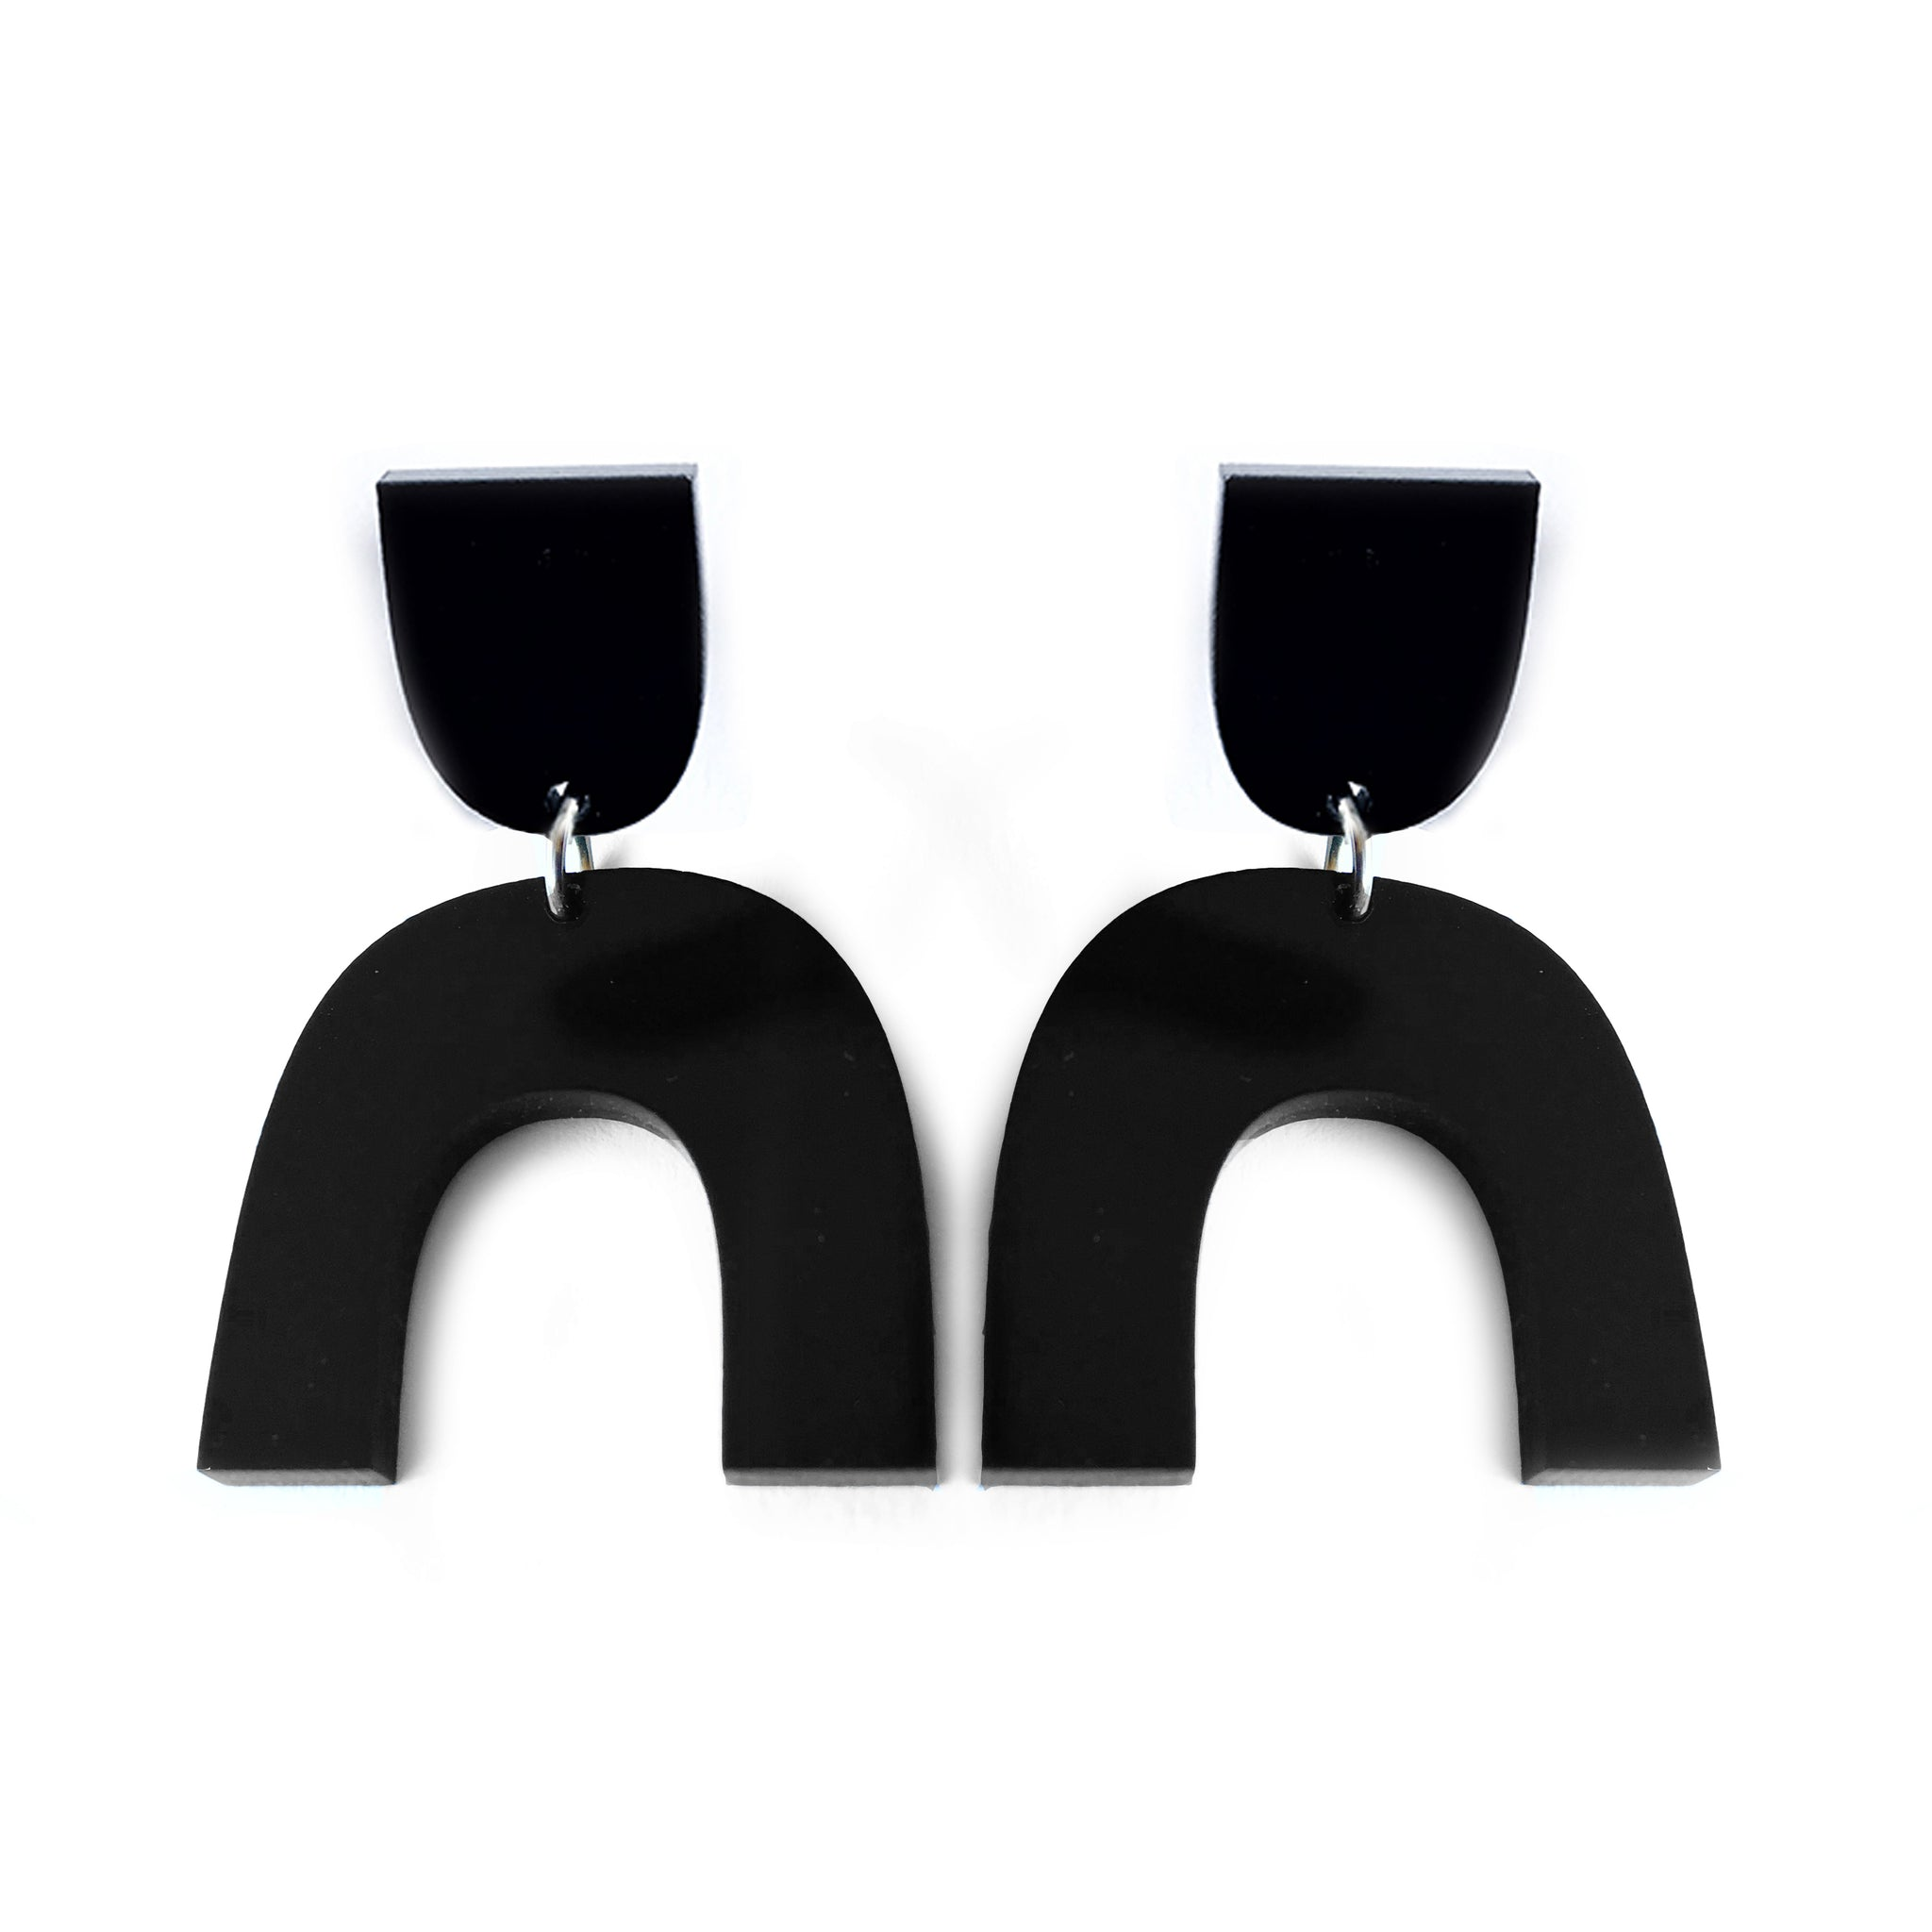 Arch Drop Earrings Black - Mikmat Designs Earrings Laser Cut Designs